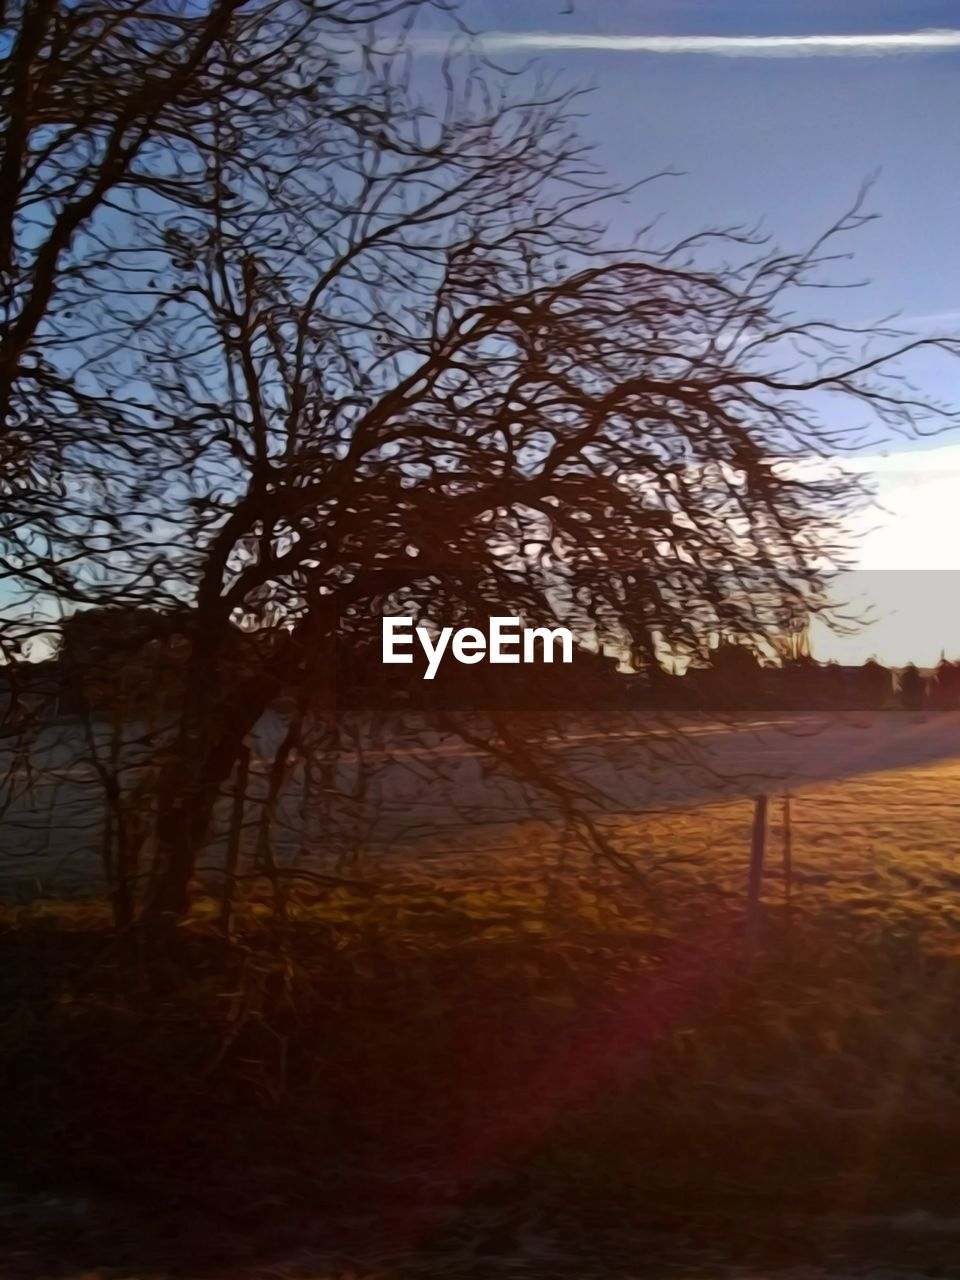 tree, plant, sky, bare tree, nature, tranquility, land, beauty in nature, no people, tranquil scene, branch, scenics - nature, field, outdoors, non-urban scene, sunset, environment, landscape, growth, forest